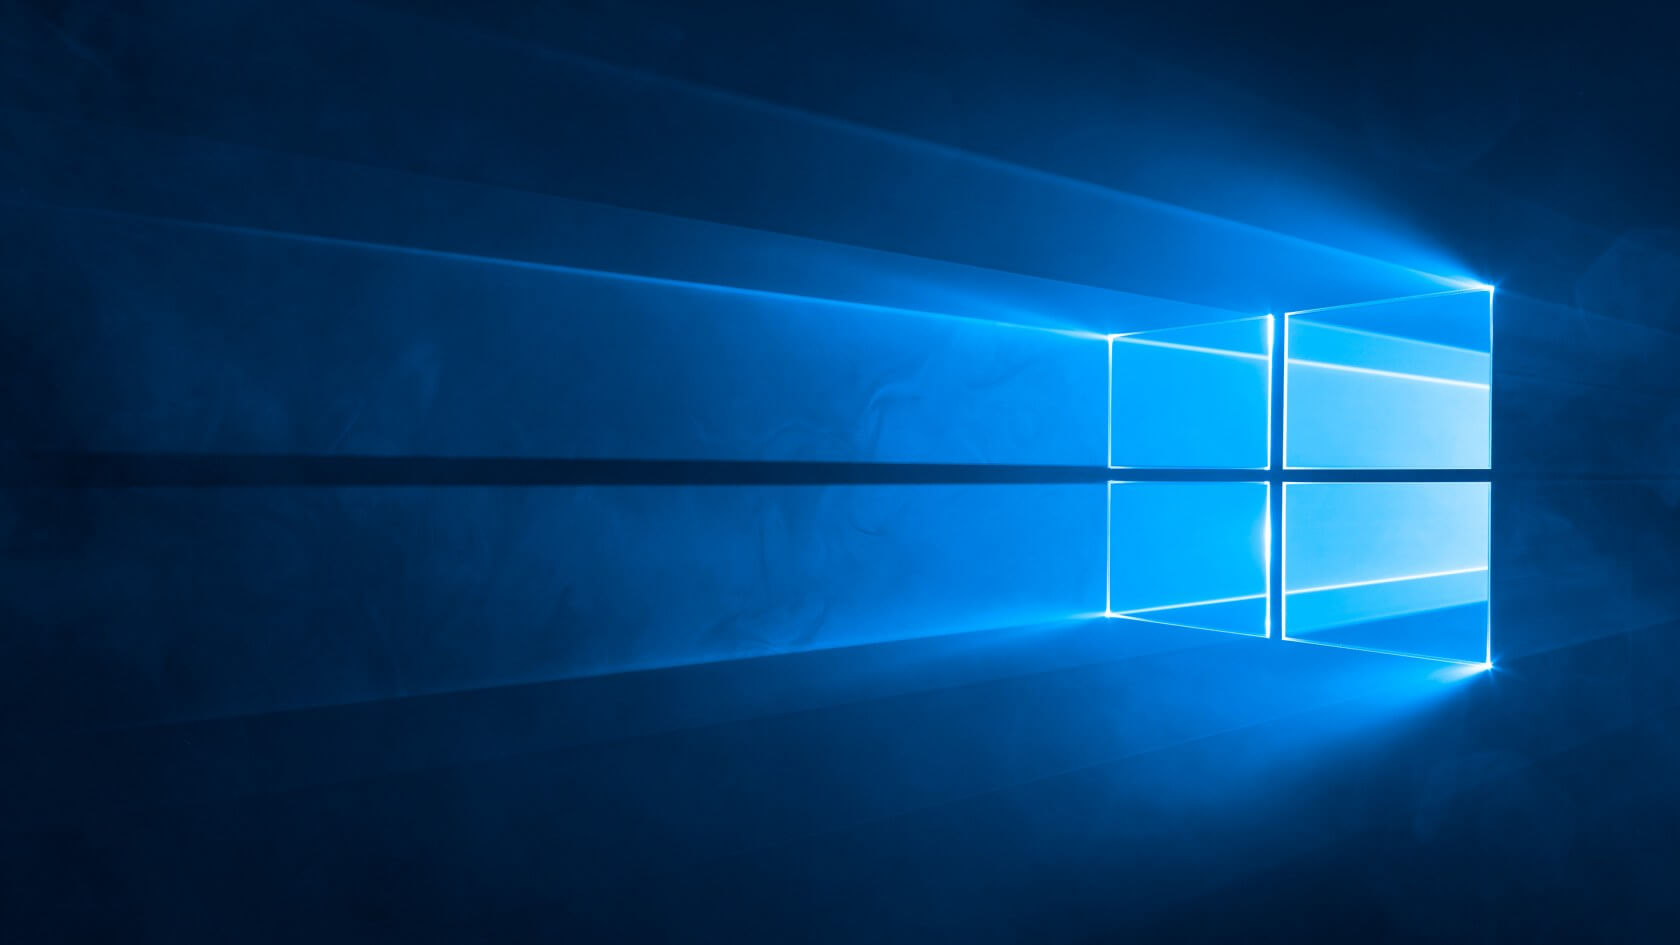 Could this be the new Windows 10 Start Menu that lacks Live Tiles?